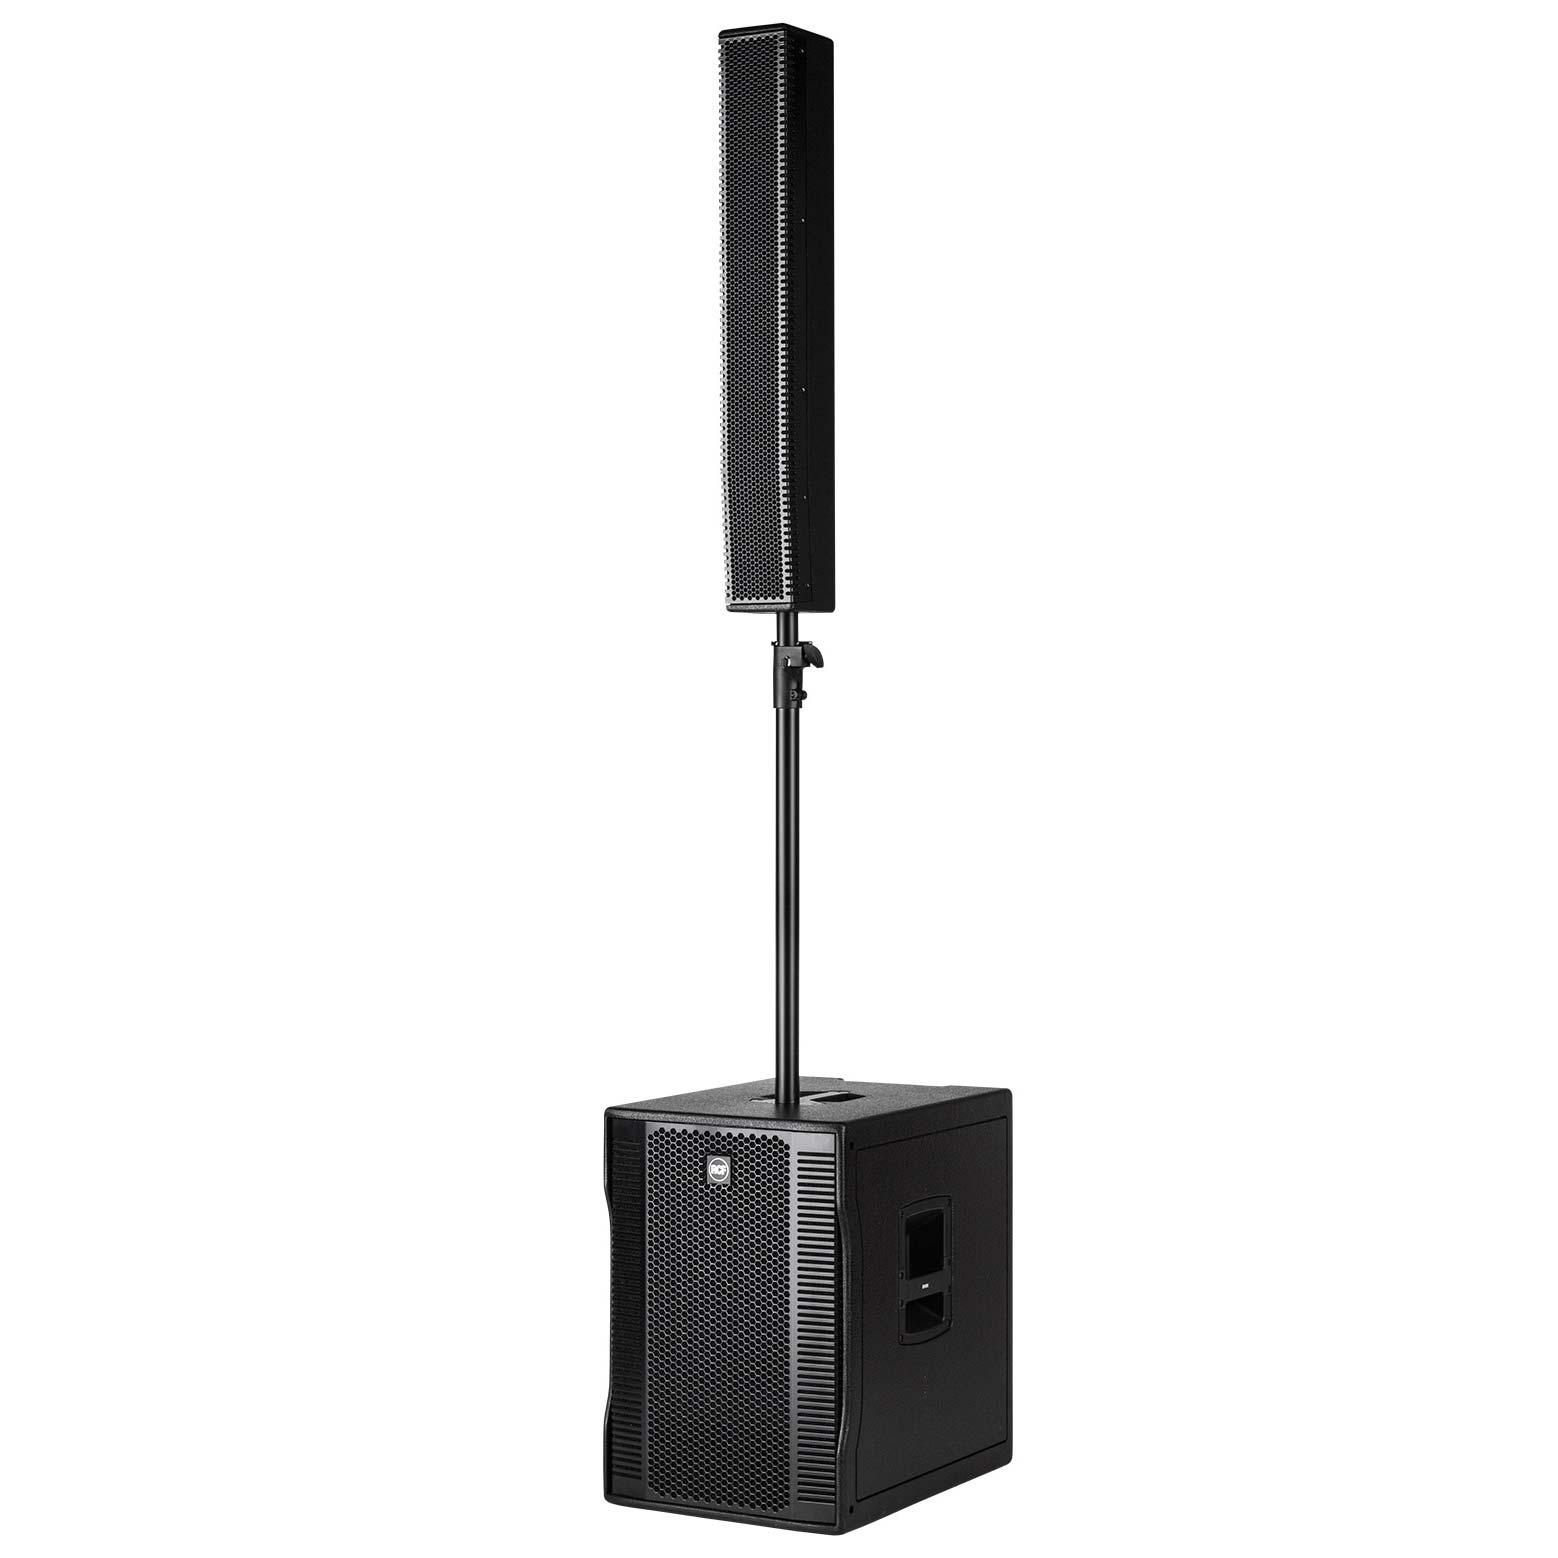 RCF EVOX 12 Portable Compact Two-Way Active Array Sound Reinforcement System